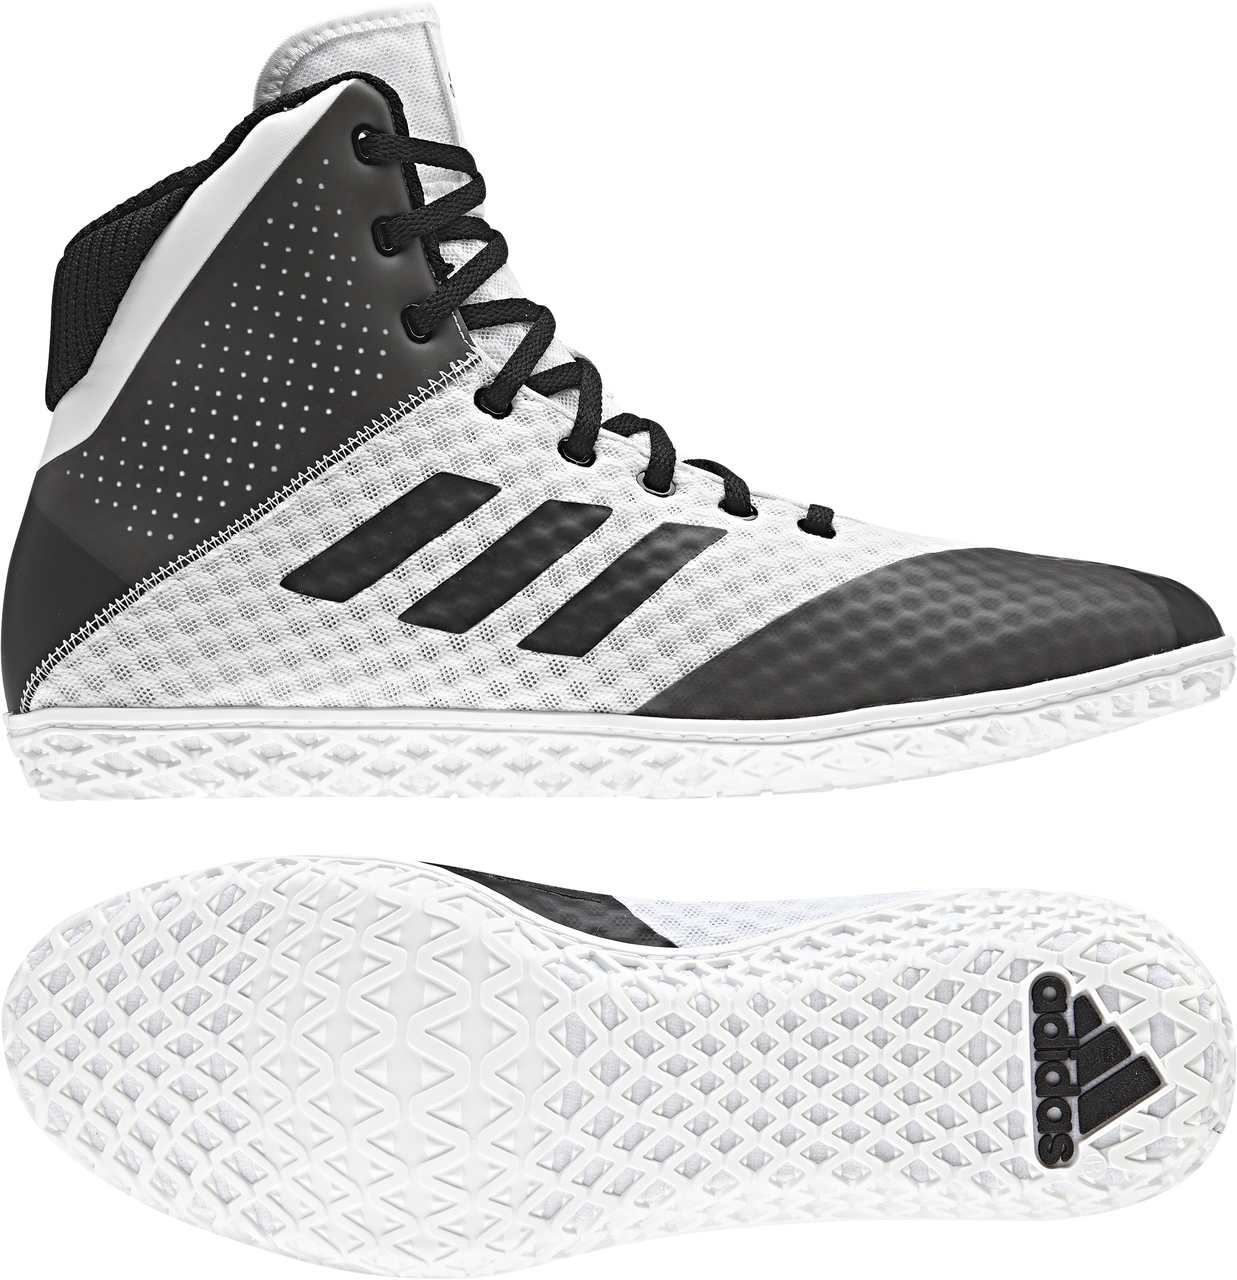 adidas Mat Wizard 4 Wrestling Shoe, color: White/Black